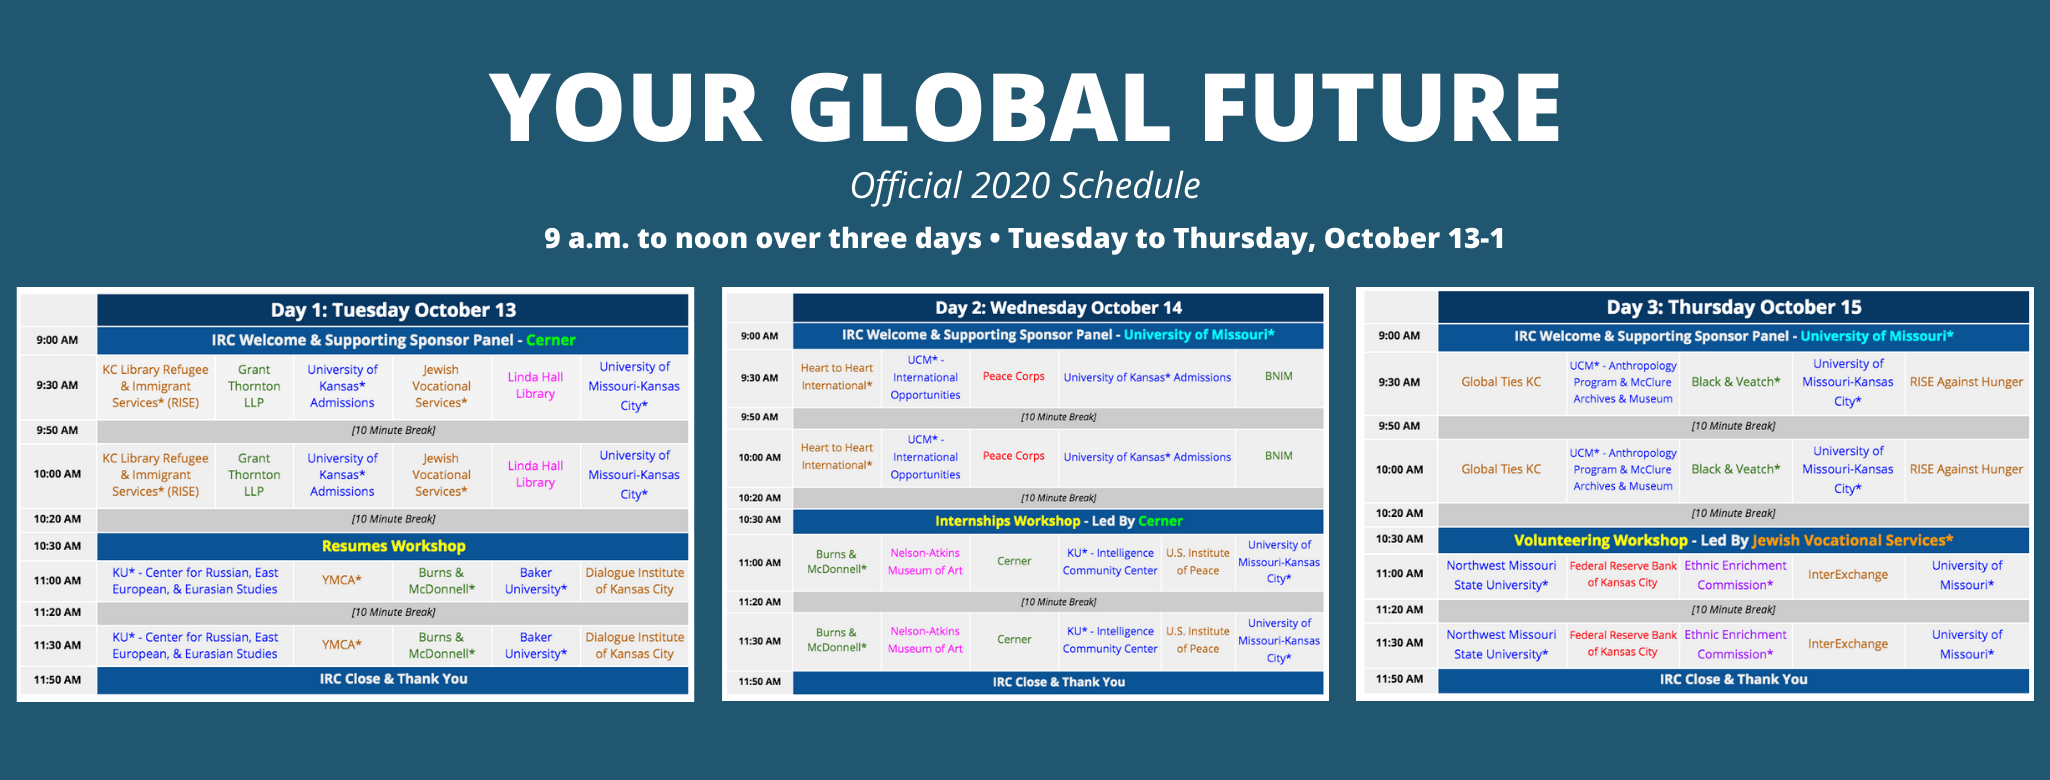 Your Global Future official schedule